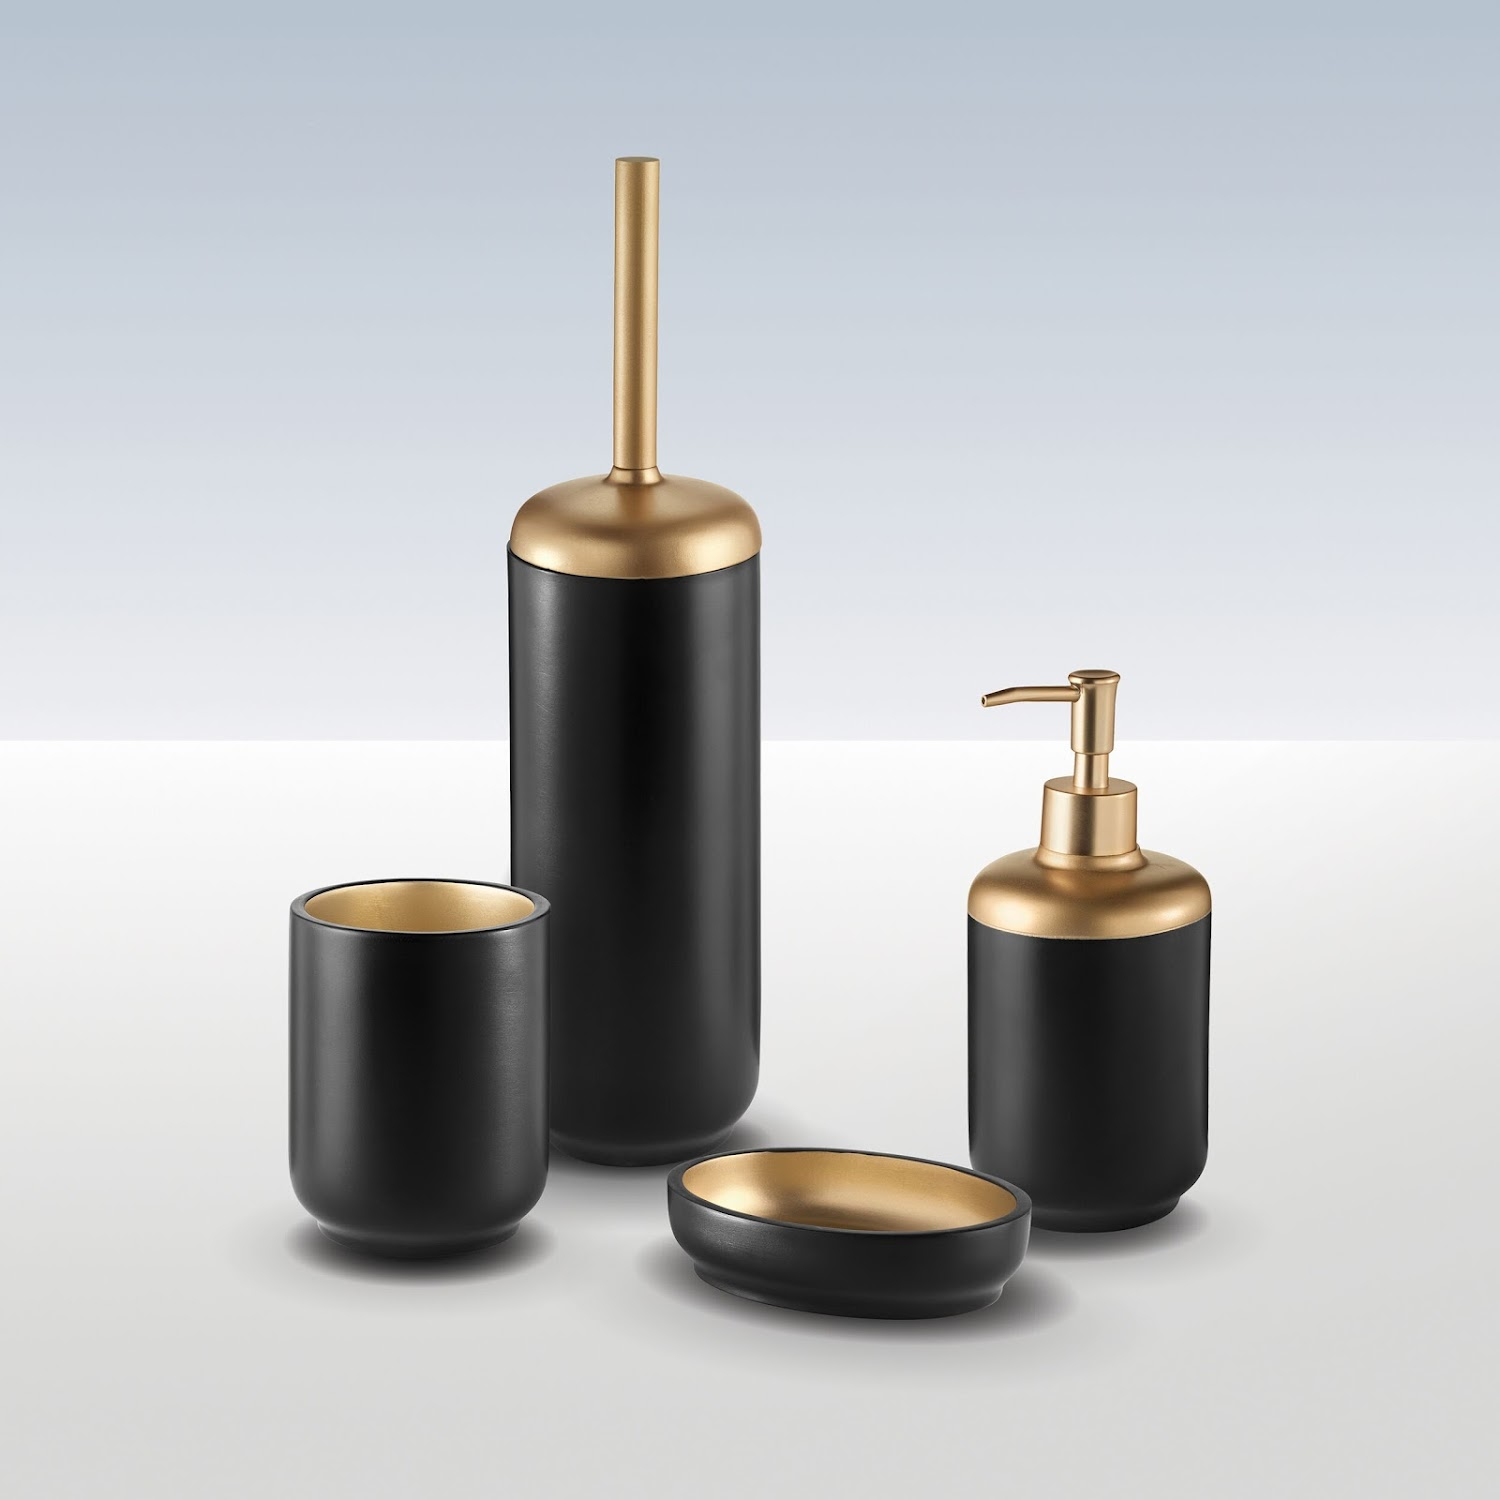 Details about Bathroom Freestanding 6 Piece Accessory Set Resin Black Gold  Durable